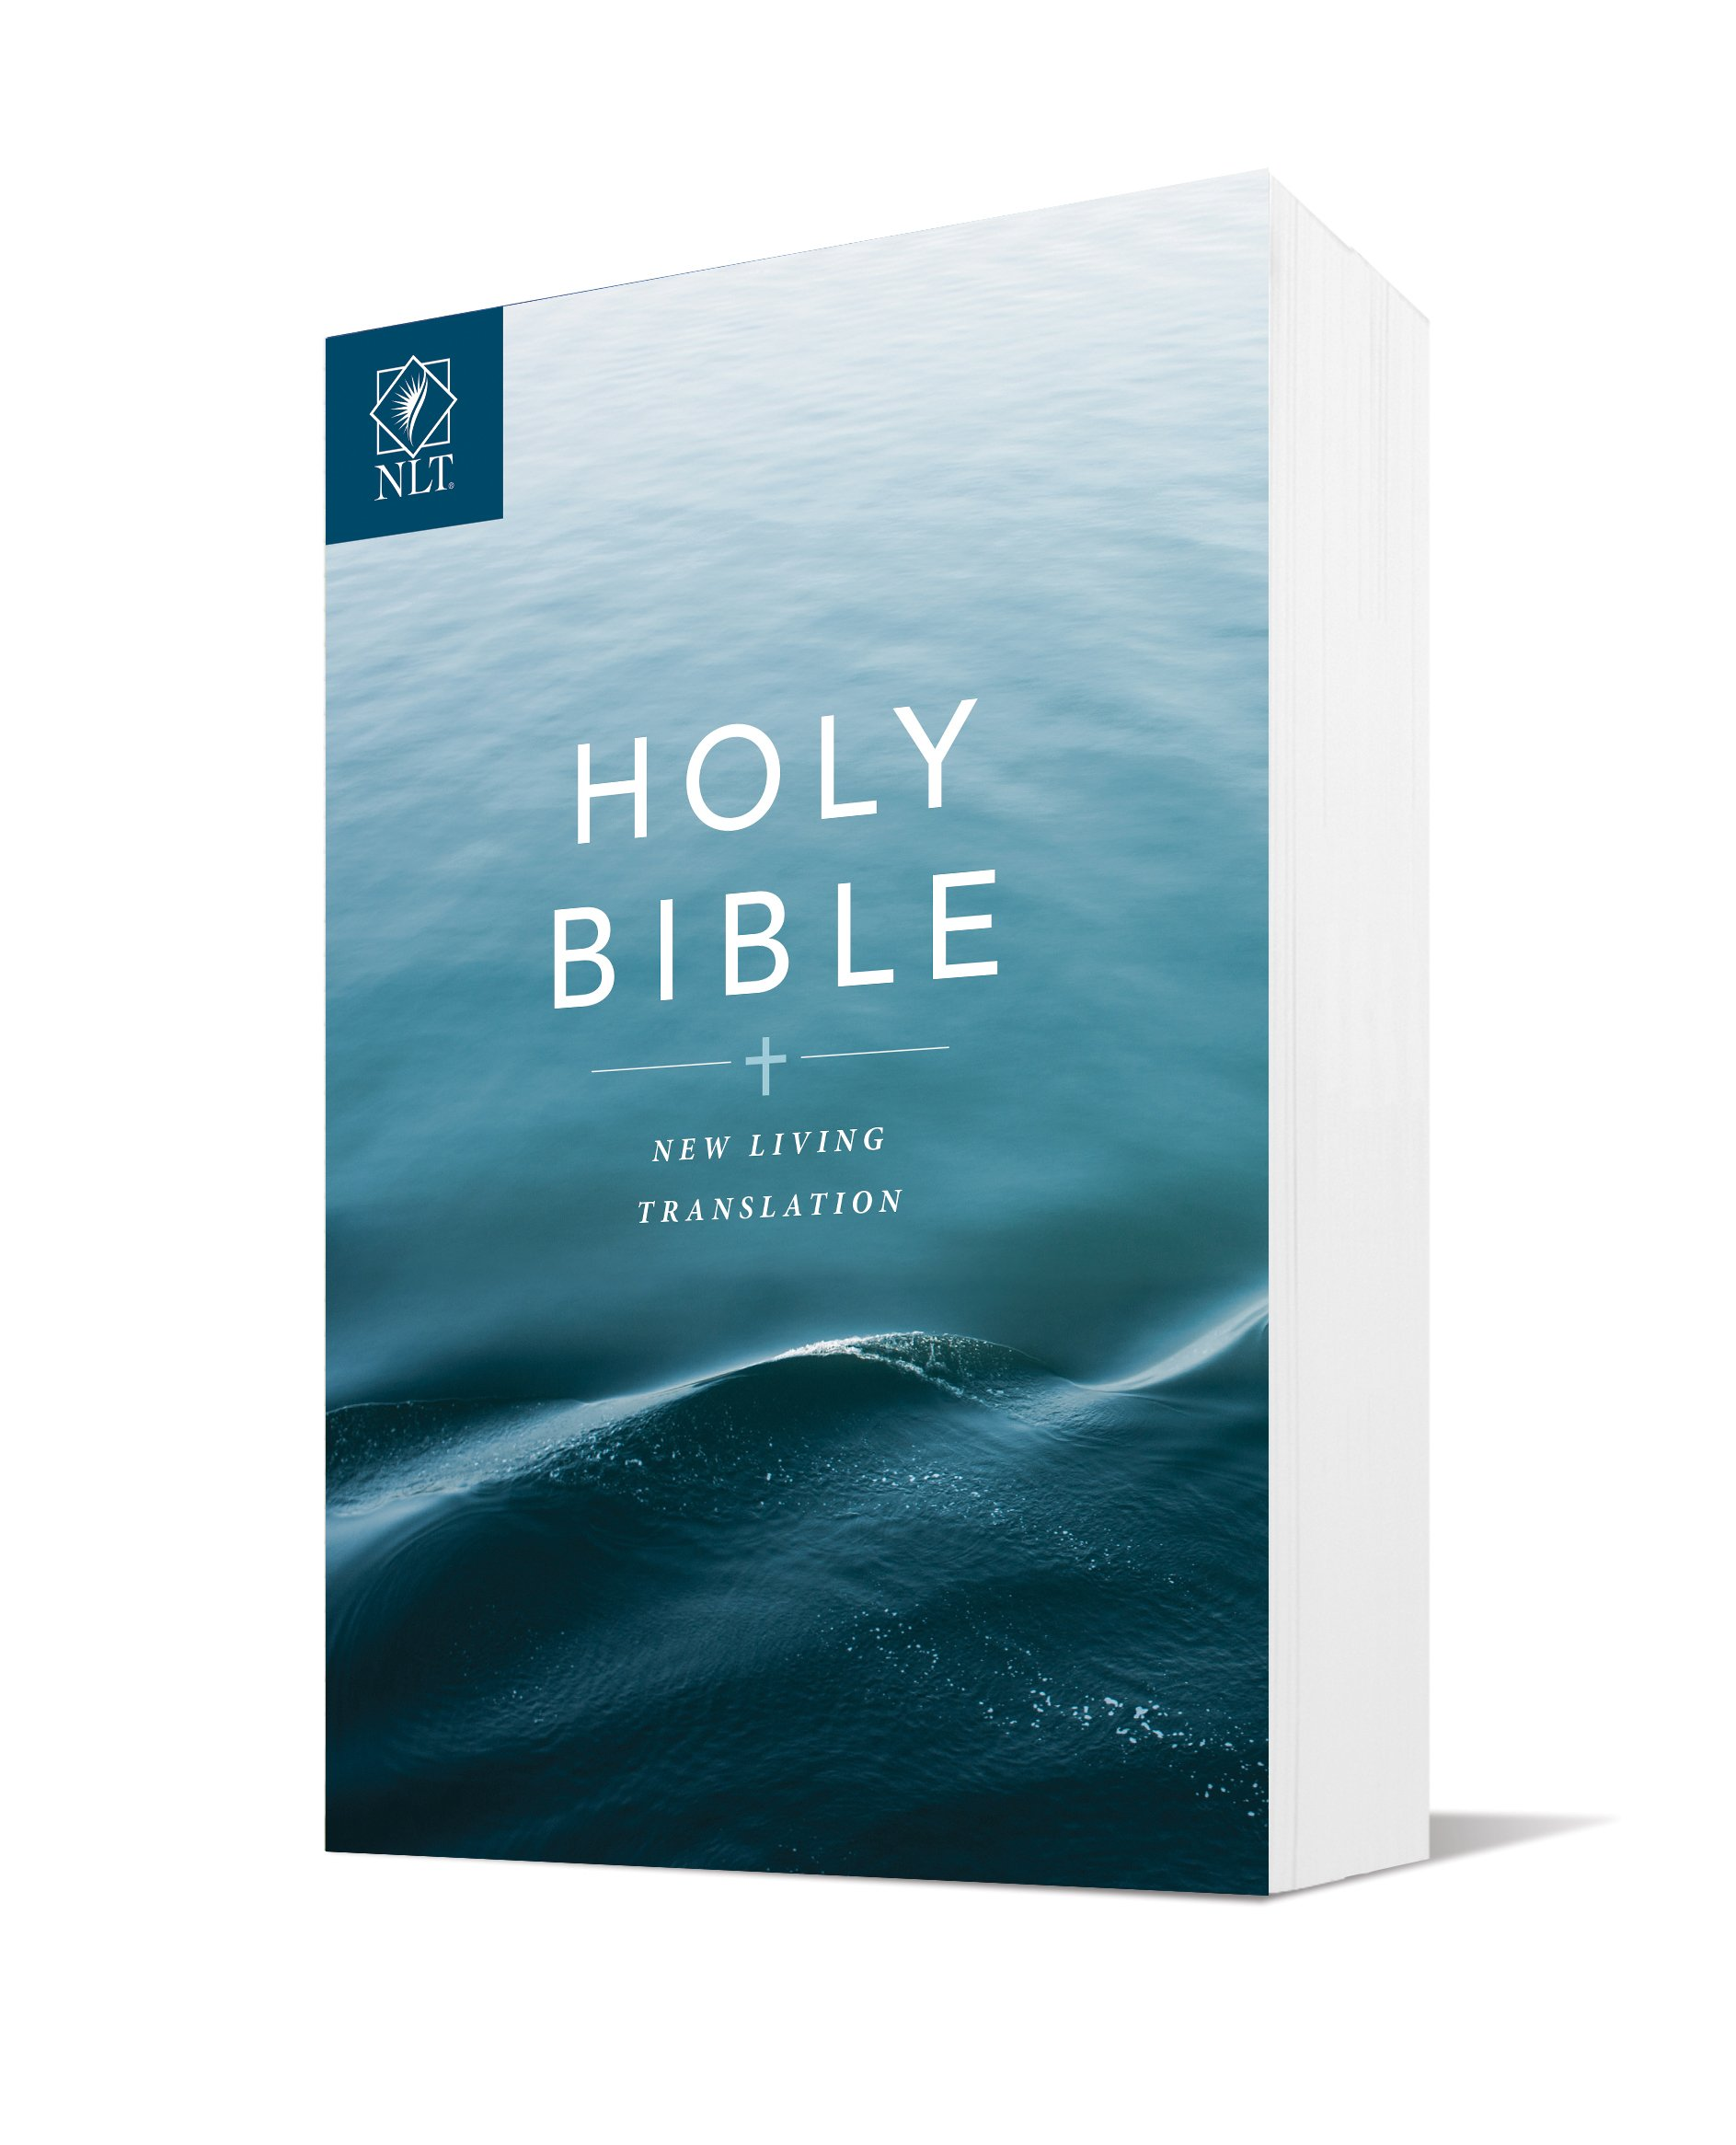 Holy bible new living translation tyndale 9781414309477 amazon holy bible new living translation tyndale 9781414309477 amazon books fandeluxe Image collections